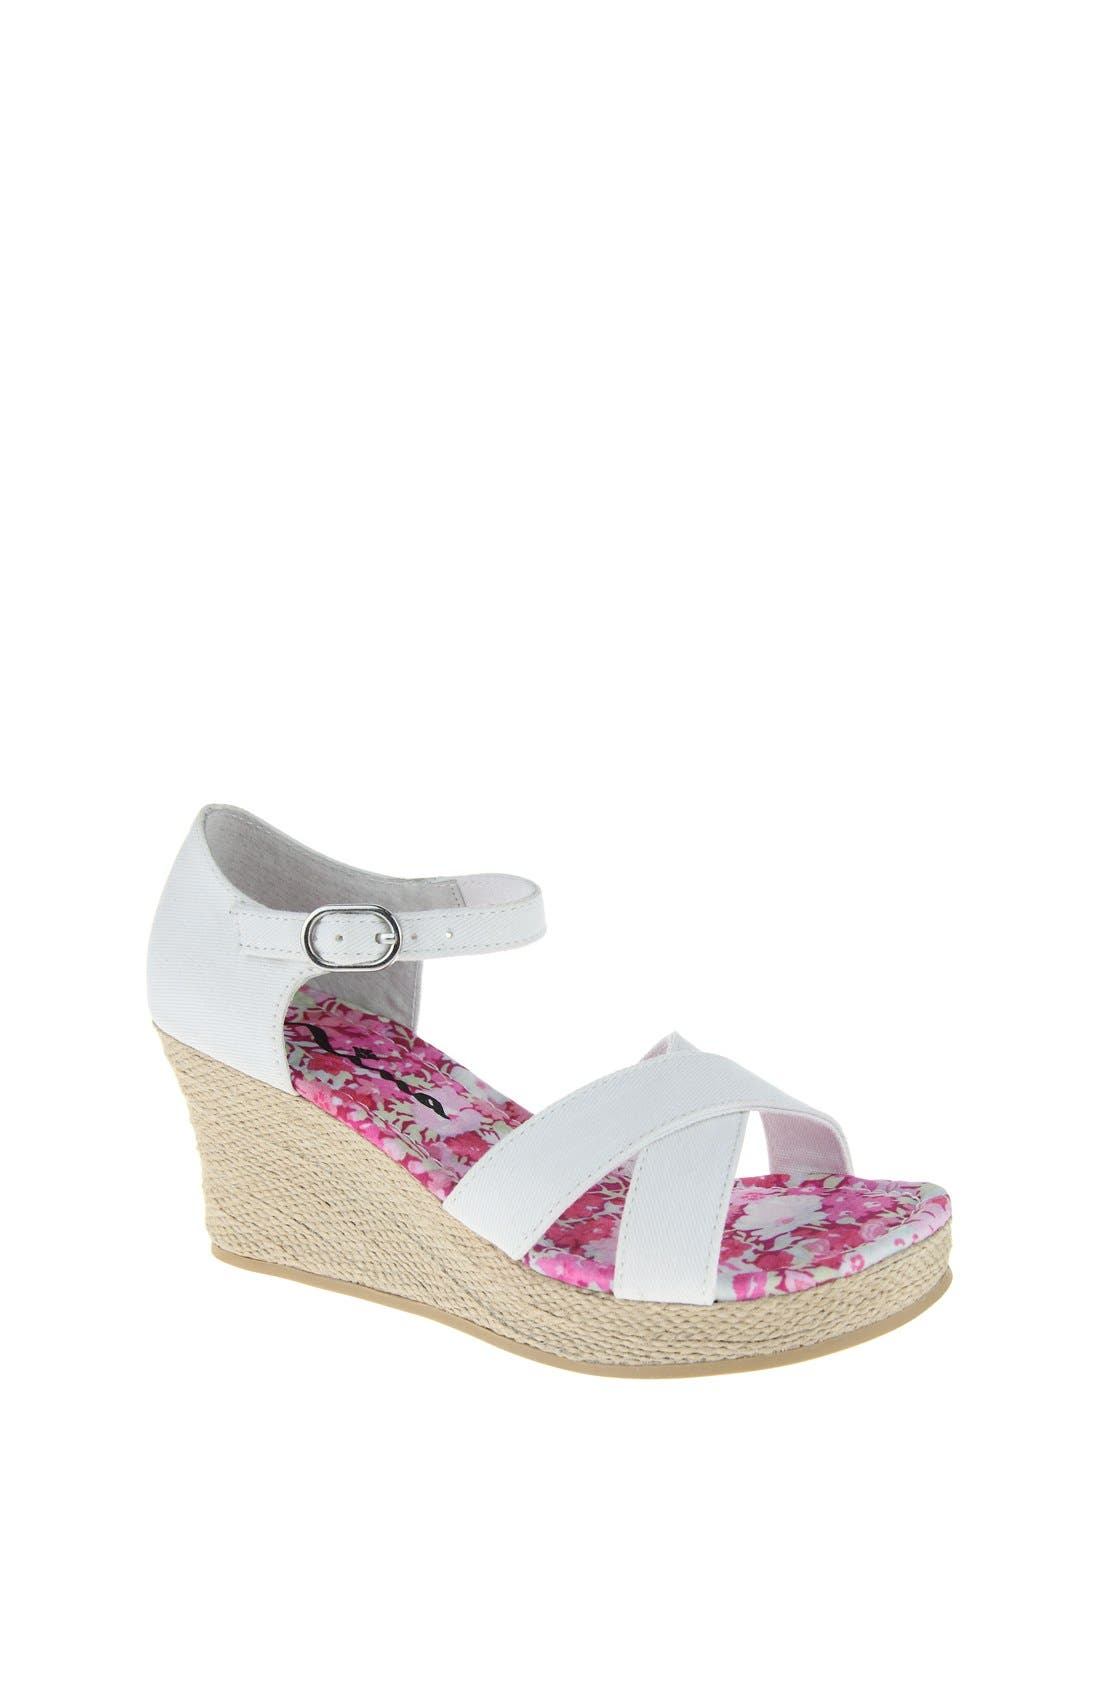 Alternate Image 1 Selected - Nina 'Ailani' Wedge Sandal (Little Kid & Big Kid)